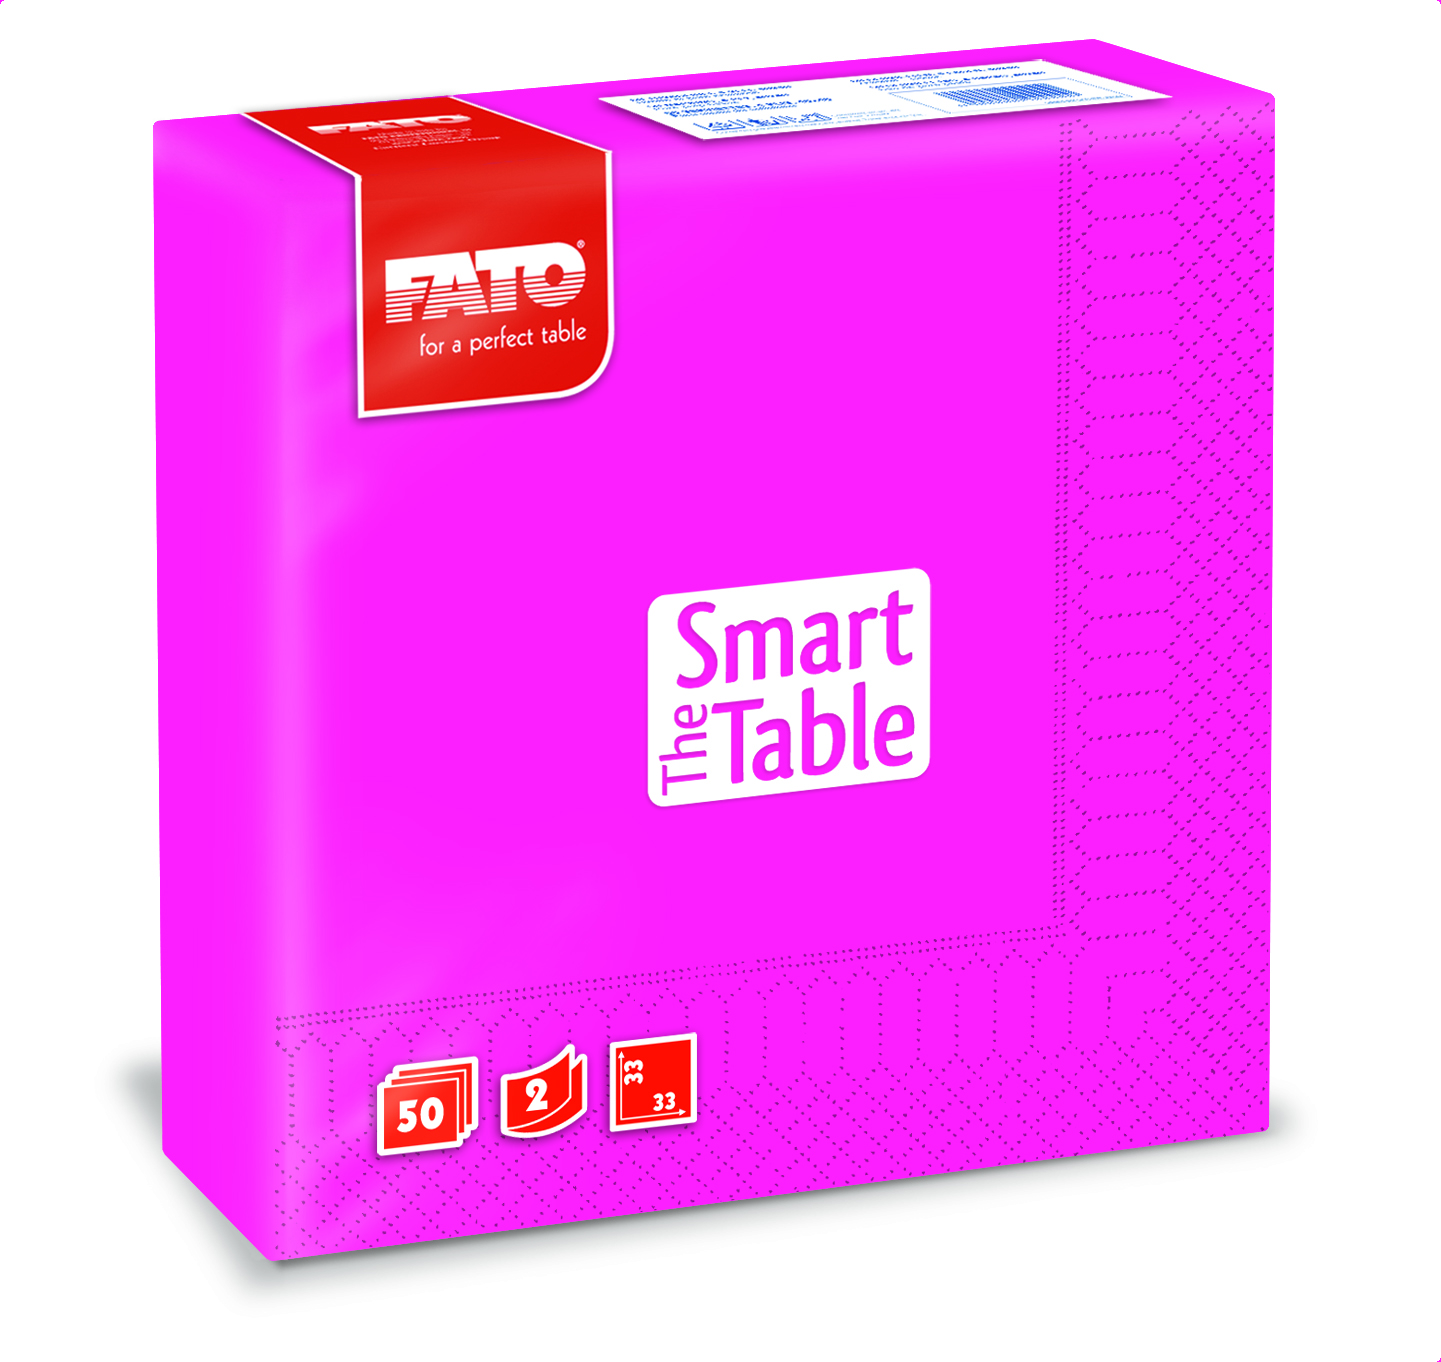 Ubrousky The Smart Table, 33x33cm, 2vr., Fuchsia - 1200 ks